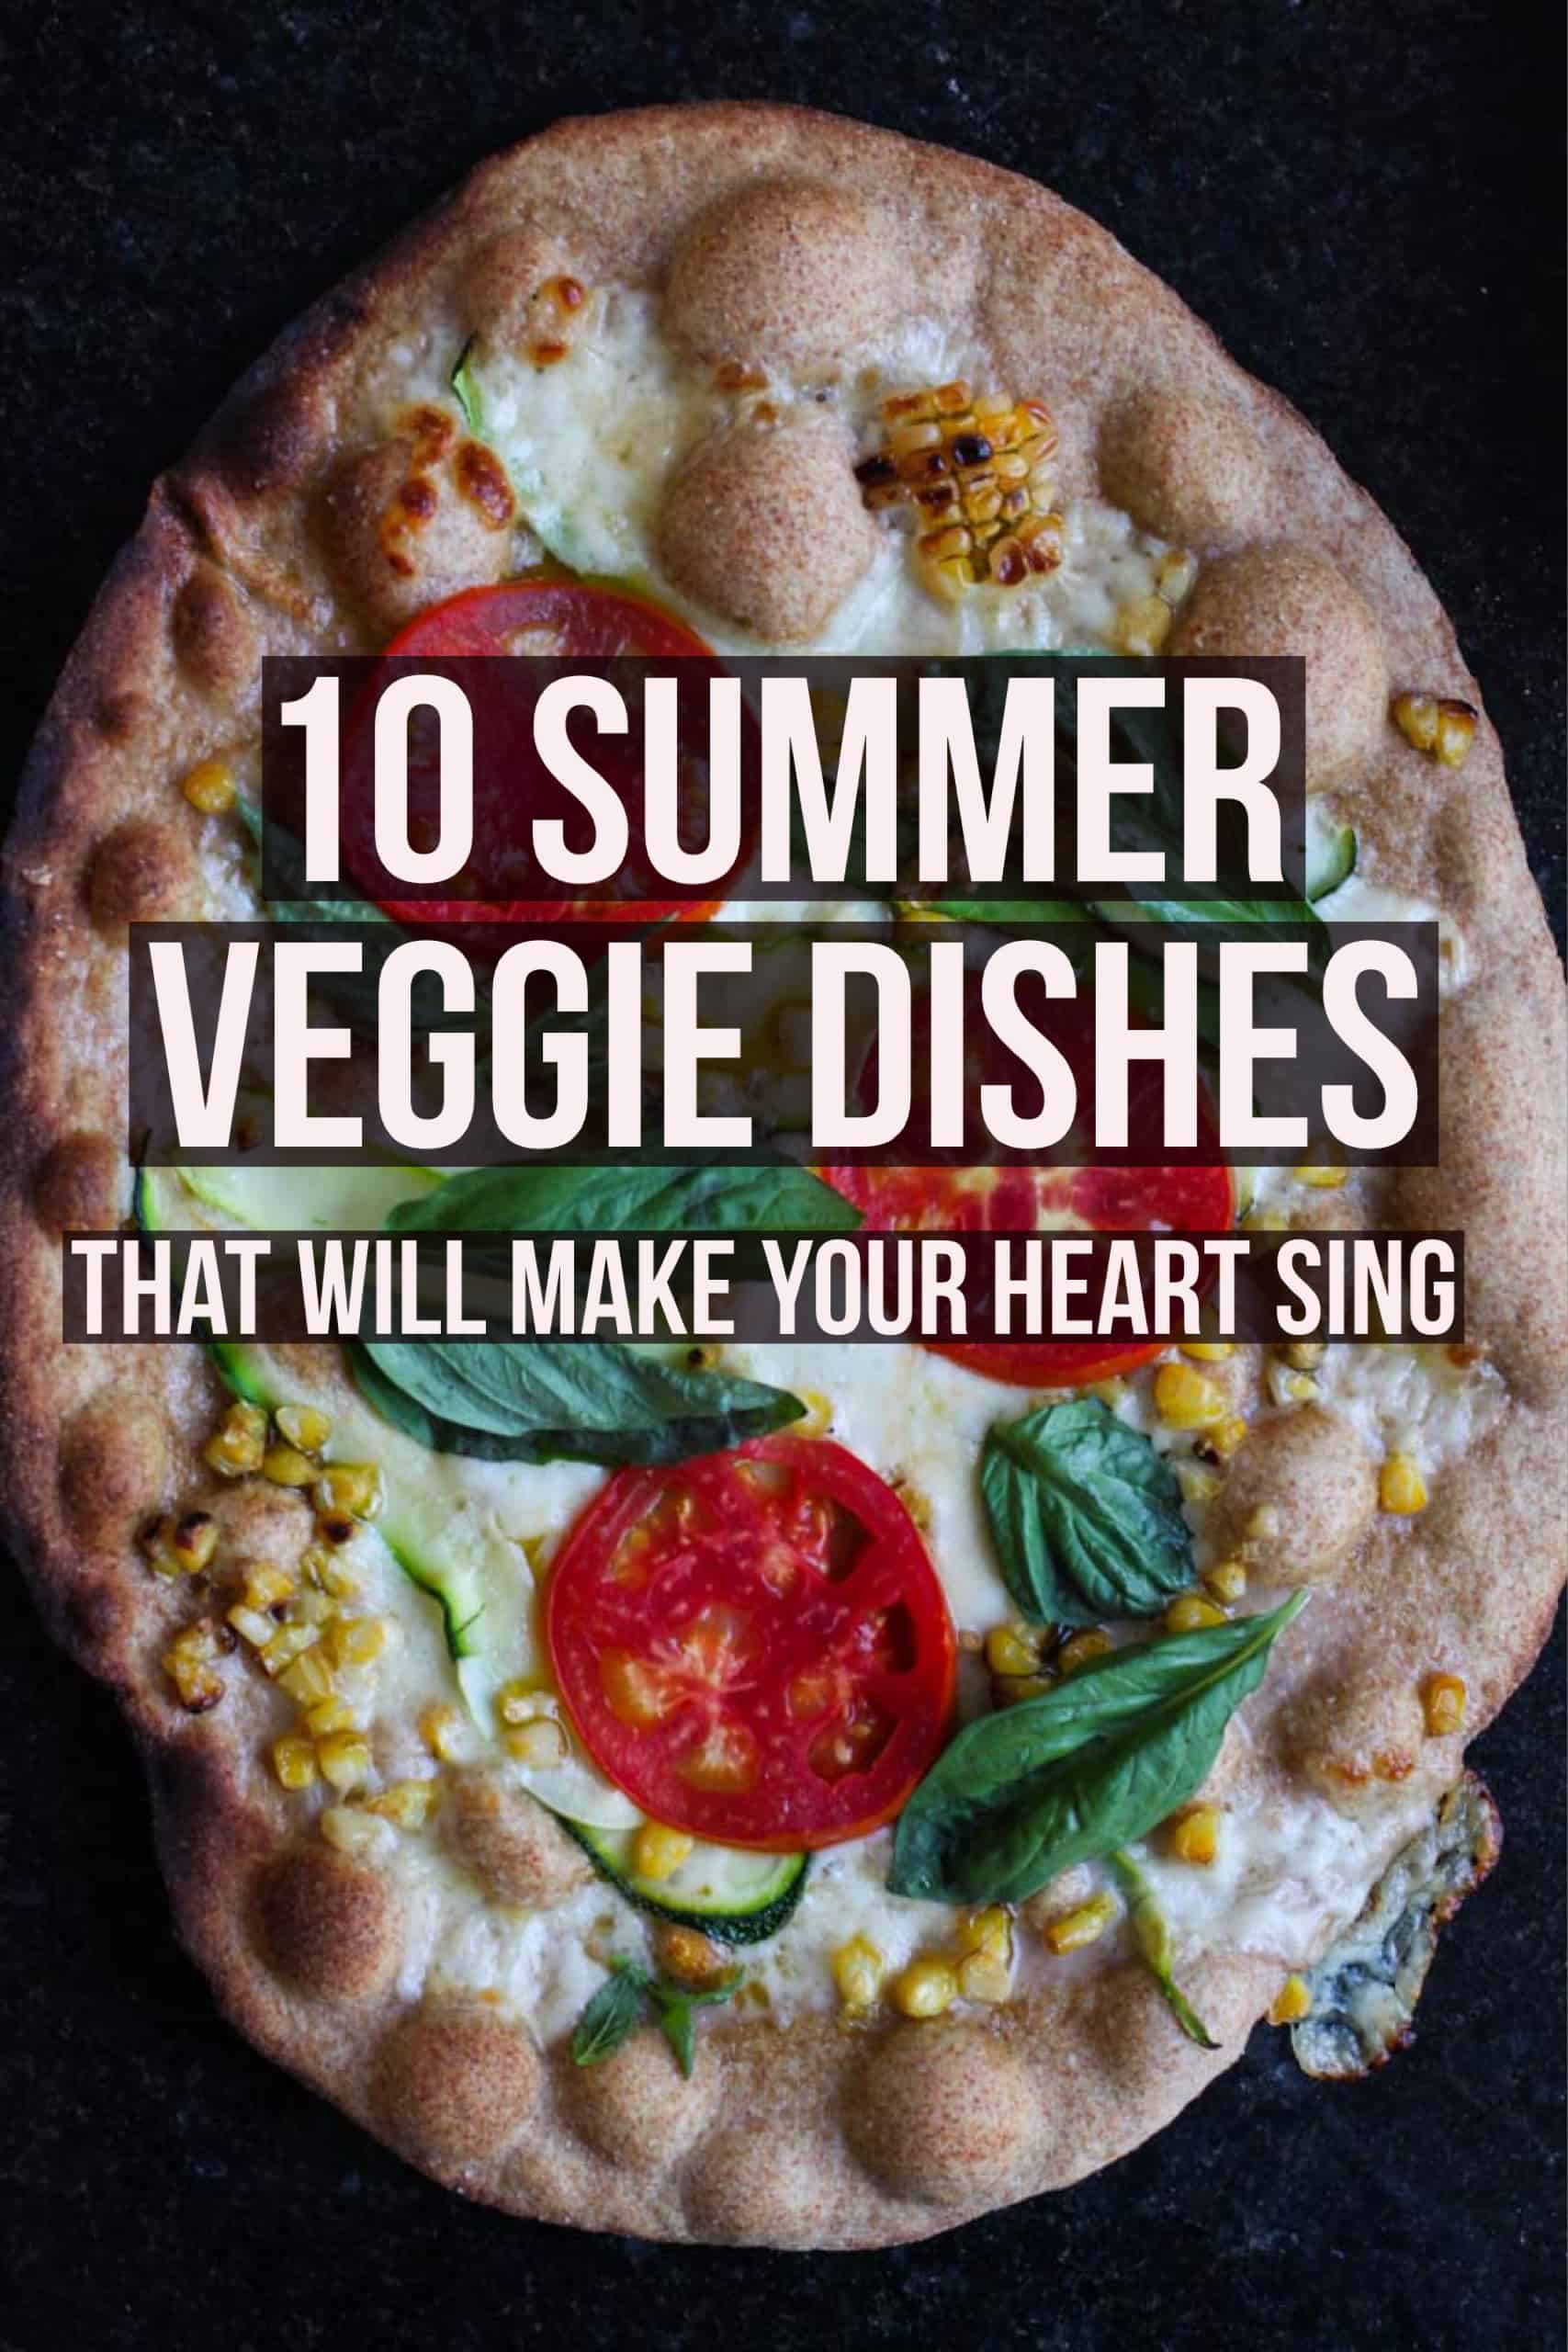 10 SUMMER VEGGIE DISHES that will make your heart sing. Full post at femalefoodie.com!